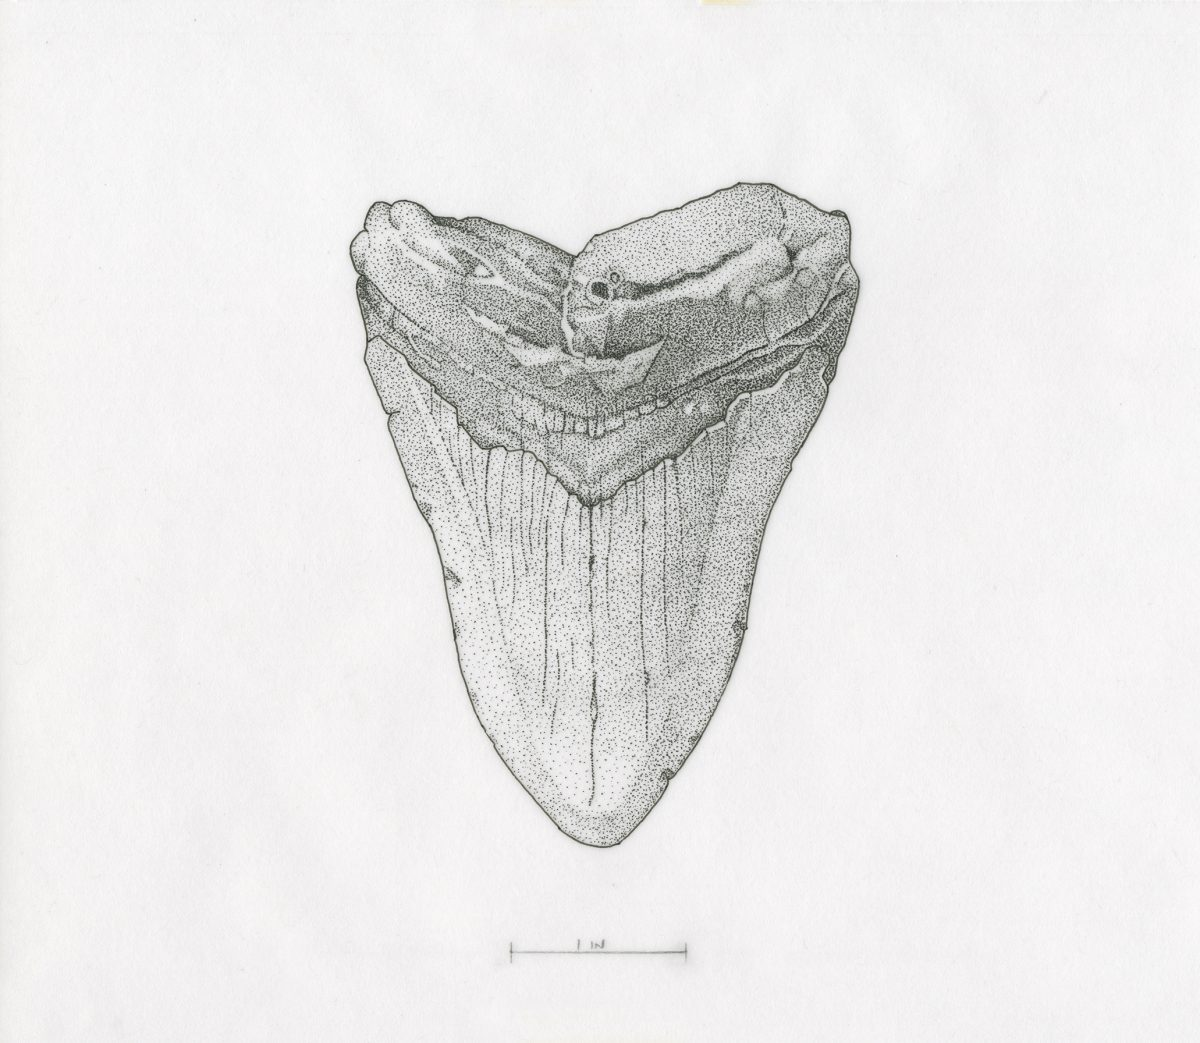 Artwork by Kirk Zimmerman titled Megalodon Tooth